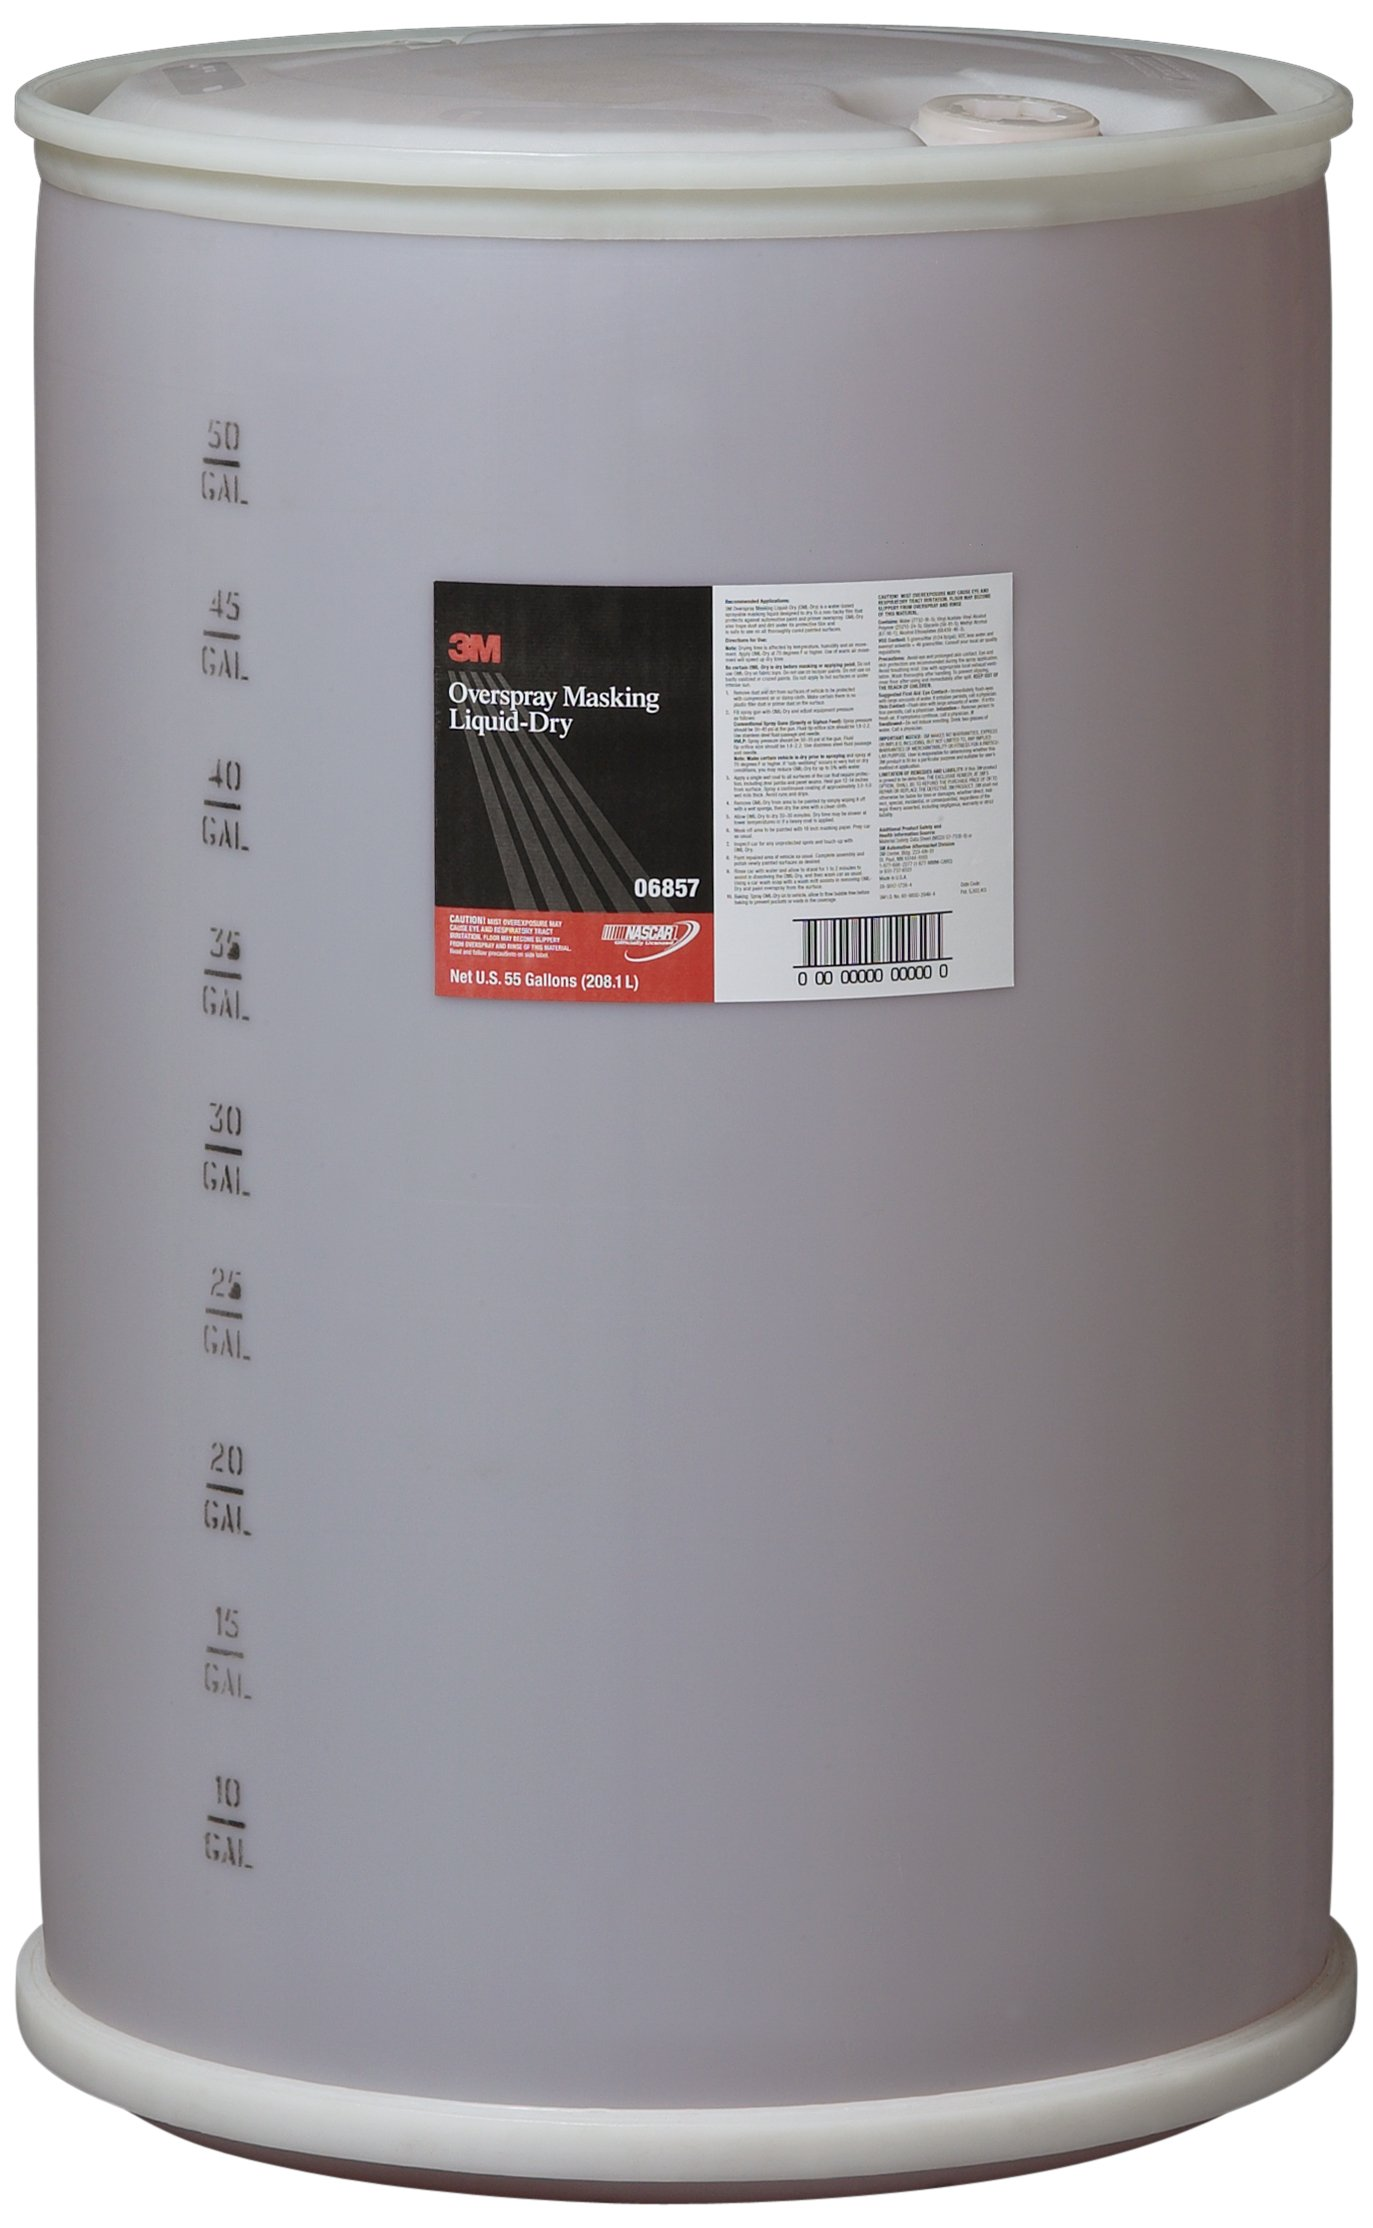 3M 06857 Overspray Masking Liquid-Dry - 55 Gallon by 3M (Image #1)